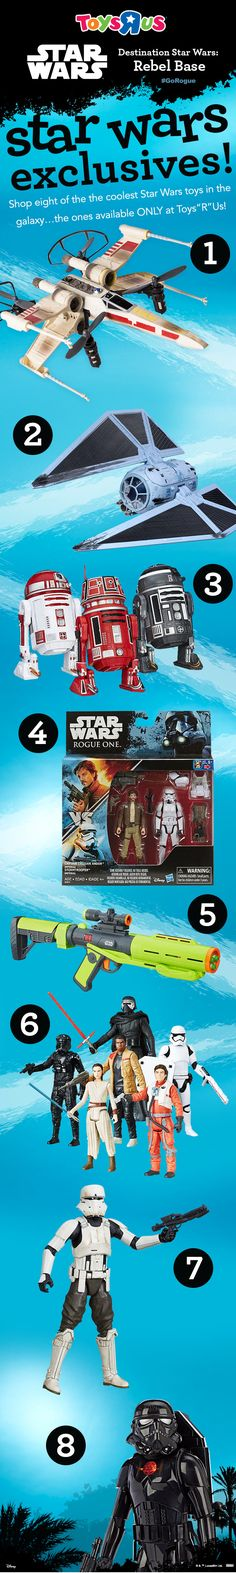 """Got a fan on your holiday shopping list who wants Star Wars toys? Let us help! We've got a host of exclusive Star Wars: Rogue One toys to choose from! Check out these great exclusive Star Wars: Rogue One collectibles, just in time for the holidays - Air Hogs Star Wars RC X-Wing Starfighter Drone; Star Wars: Rogue One Battle Damaged TIE Striker with 3.75"""" Figure; Star Wars The Black Series Astromech Droid 3-pk., and more!"""